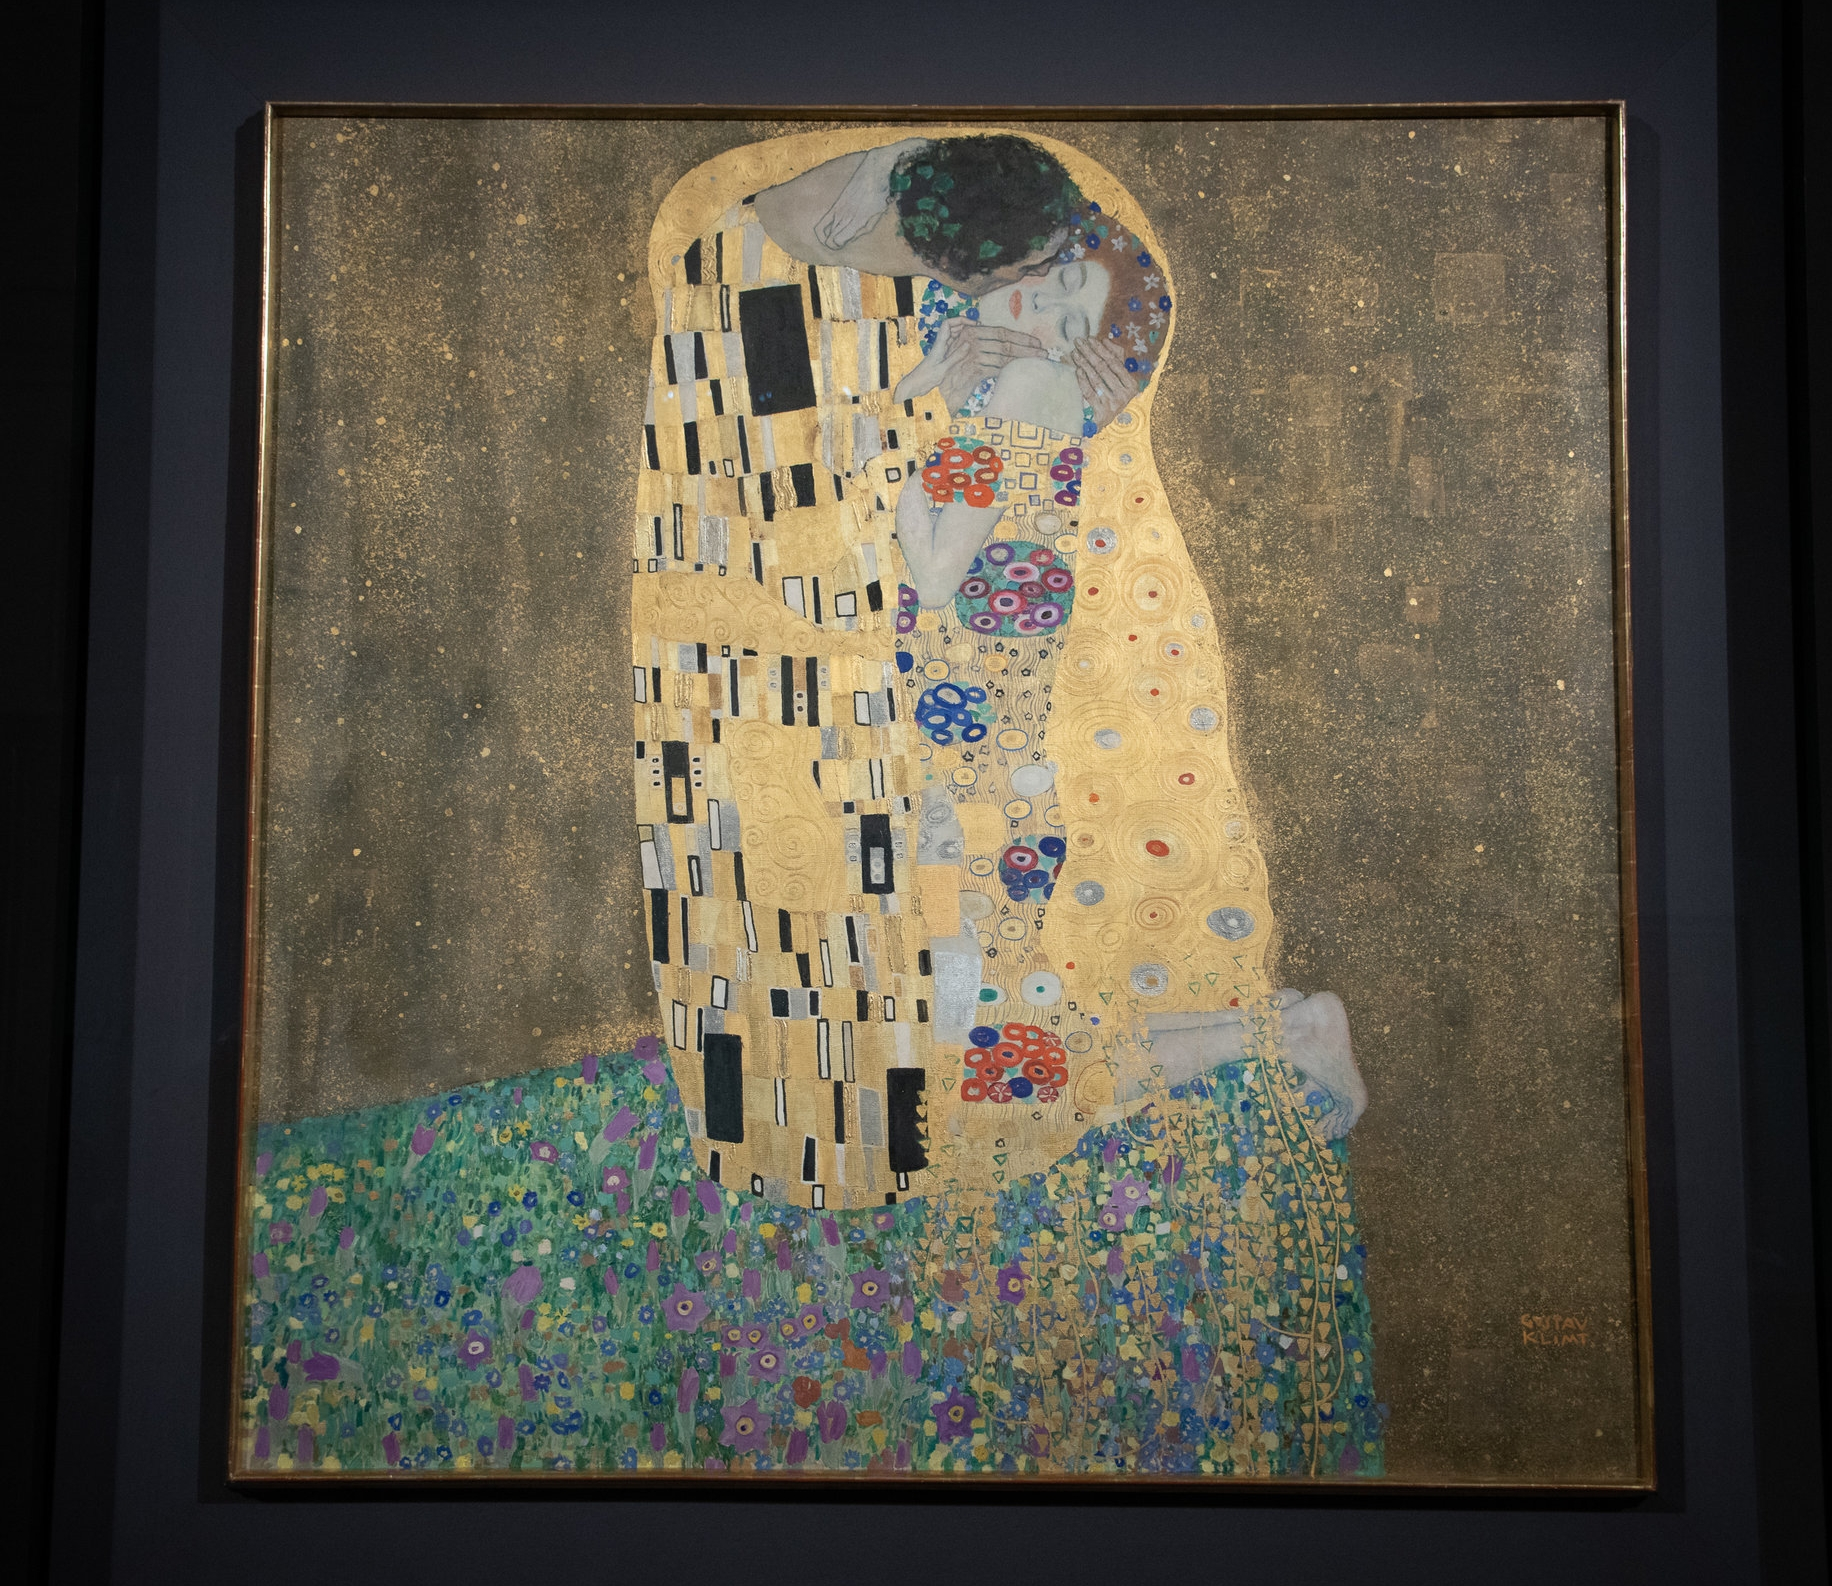 And Klimt's masterpiece, The Kiss